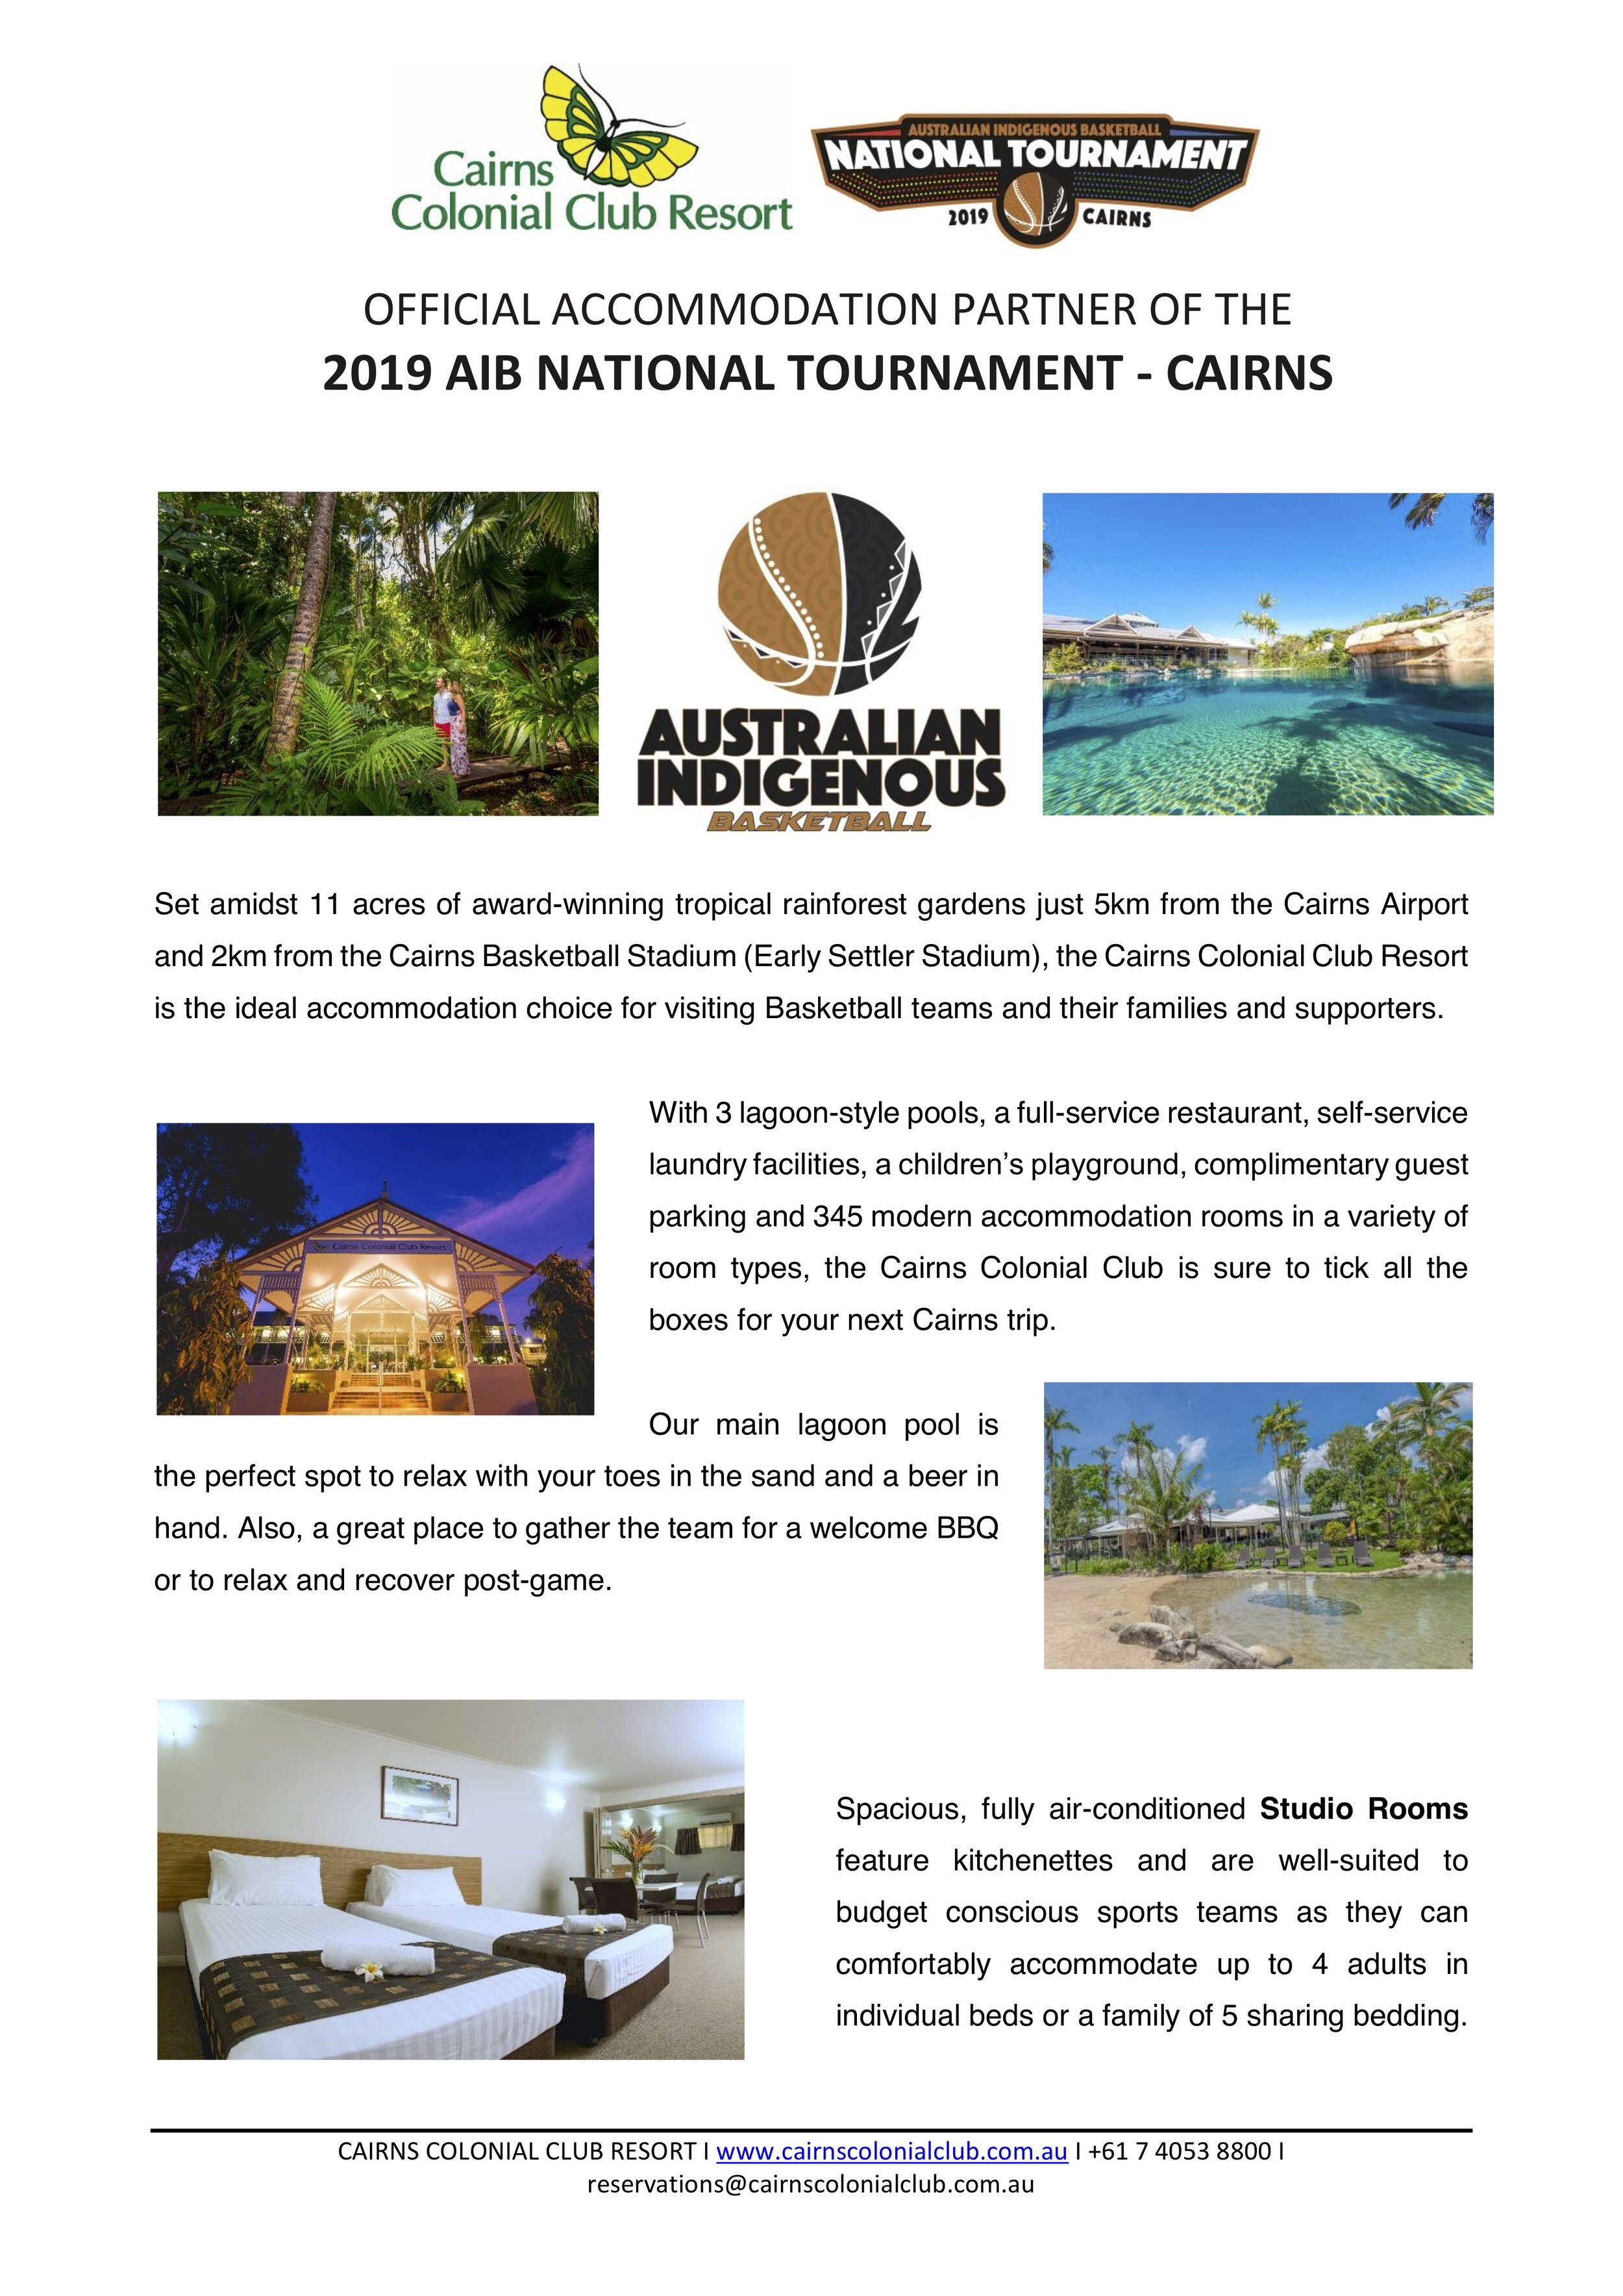 Cairns Colonial Club Resort - Accommodation AIB National Tournament.jpg